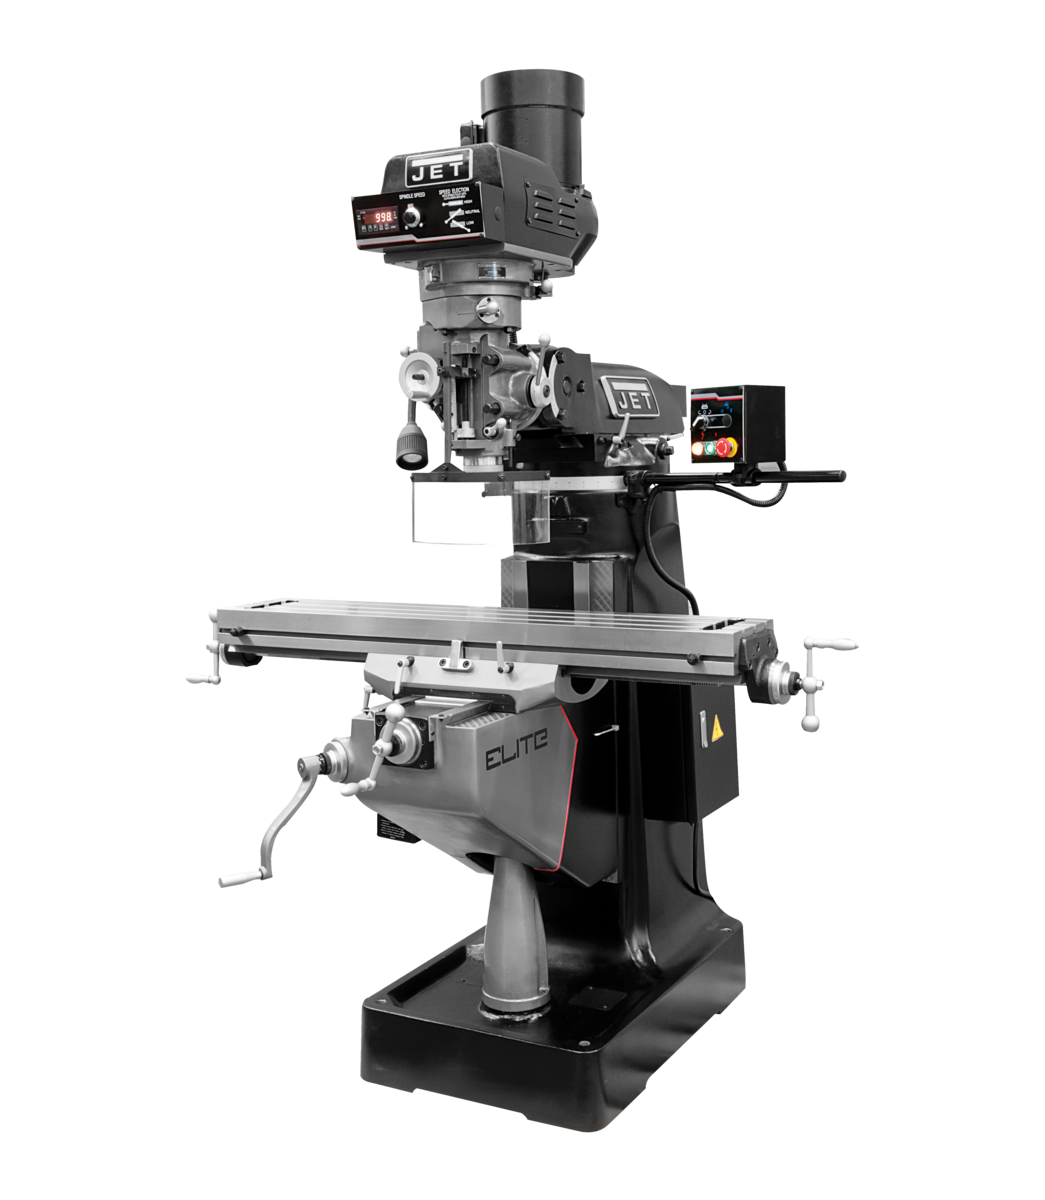 EVS-949 Mill with 3-Axis Newall DP700 (Knee) DRO